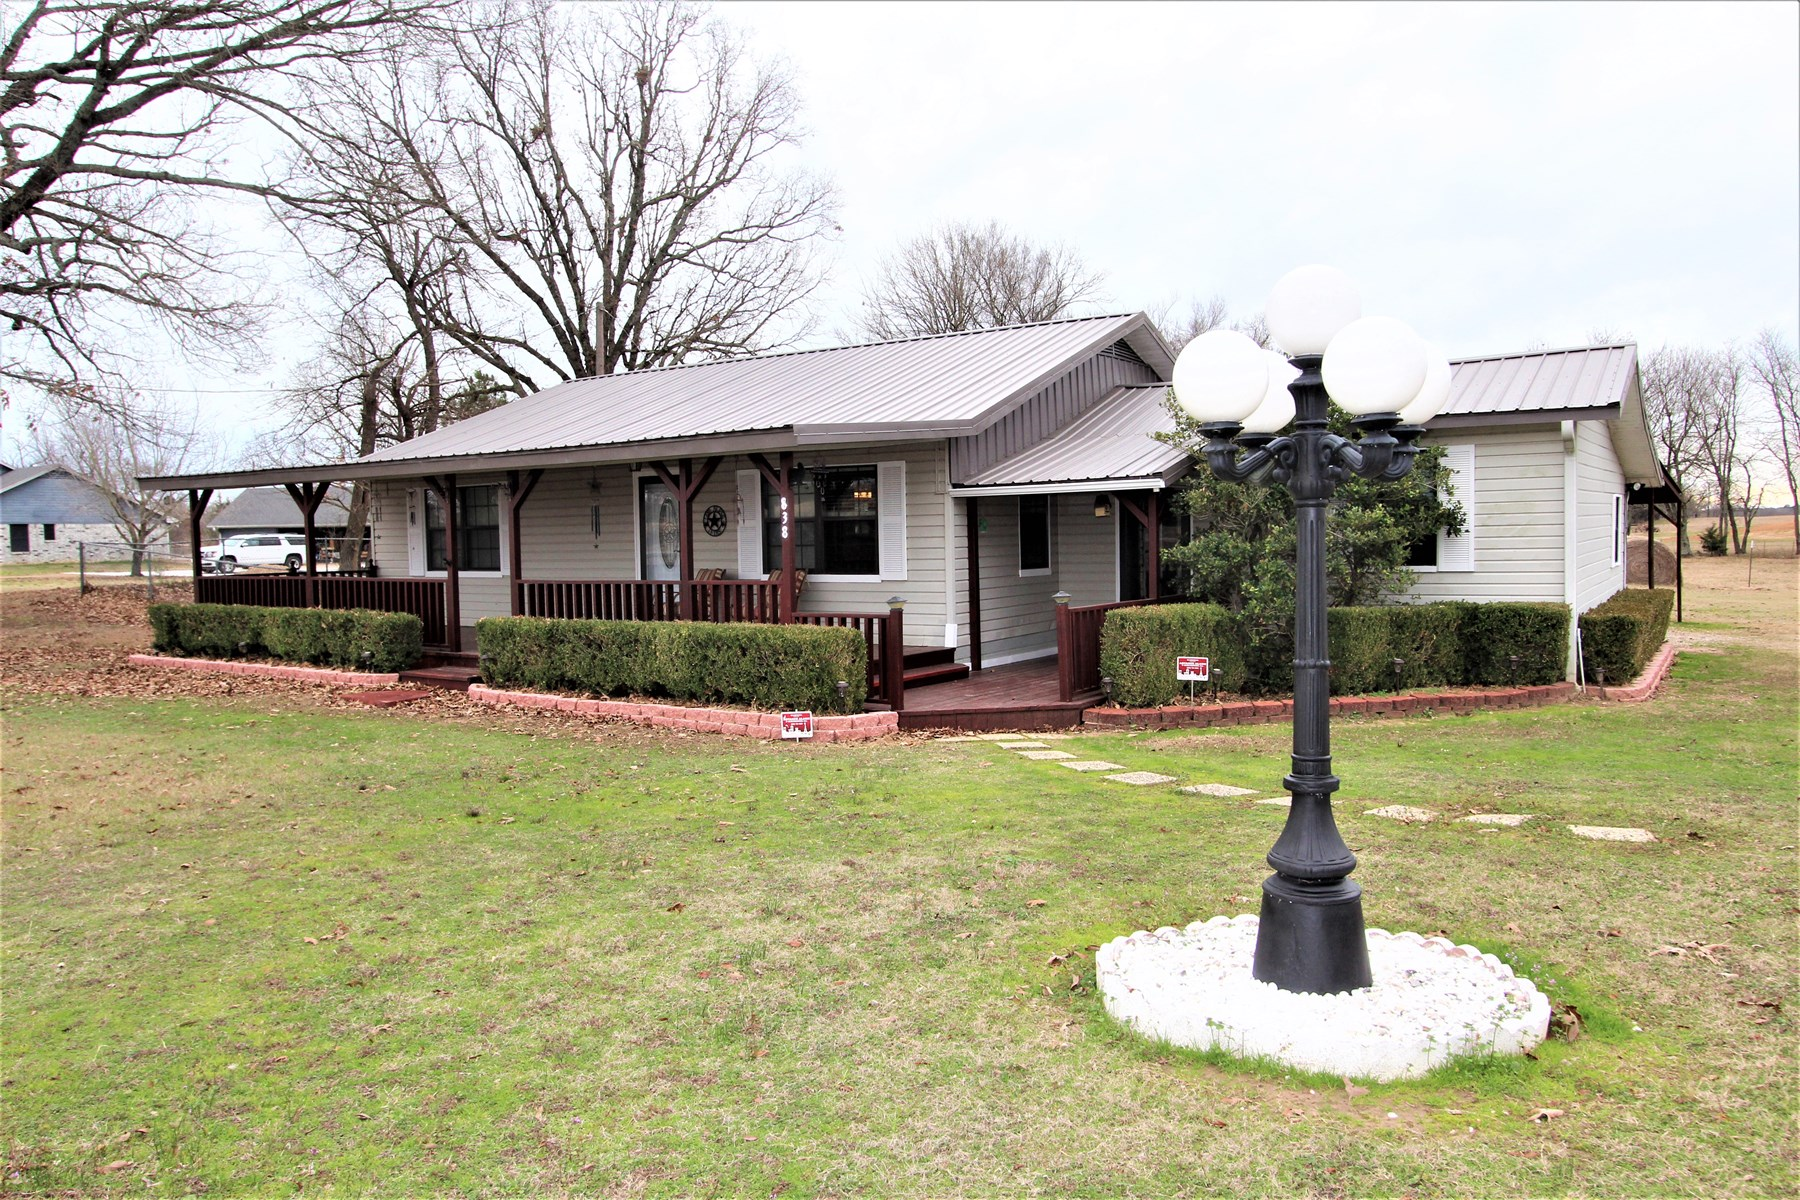 Country Home on Acreage For Sale Powderly Texas Lamar County